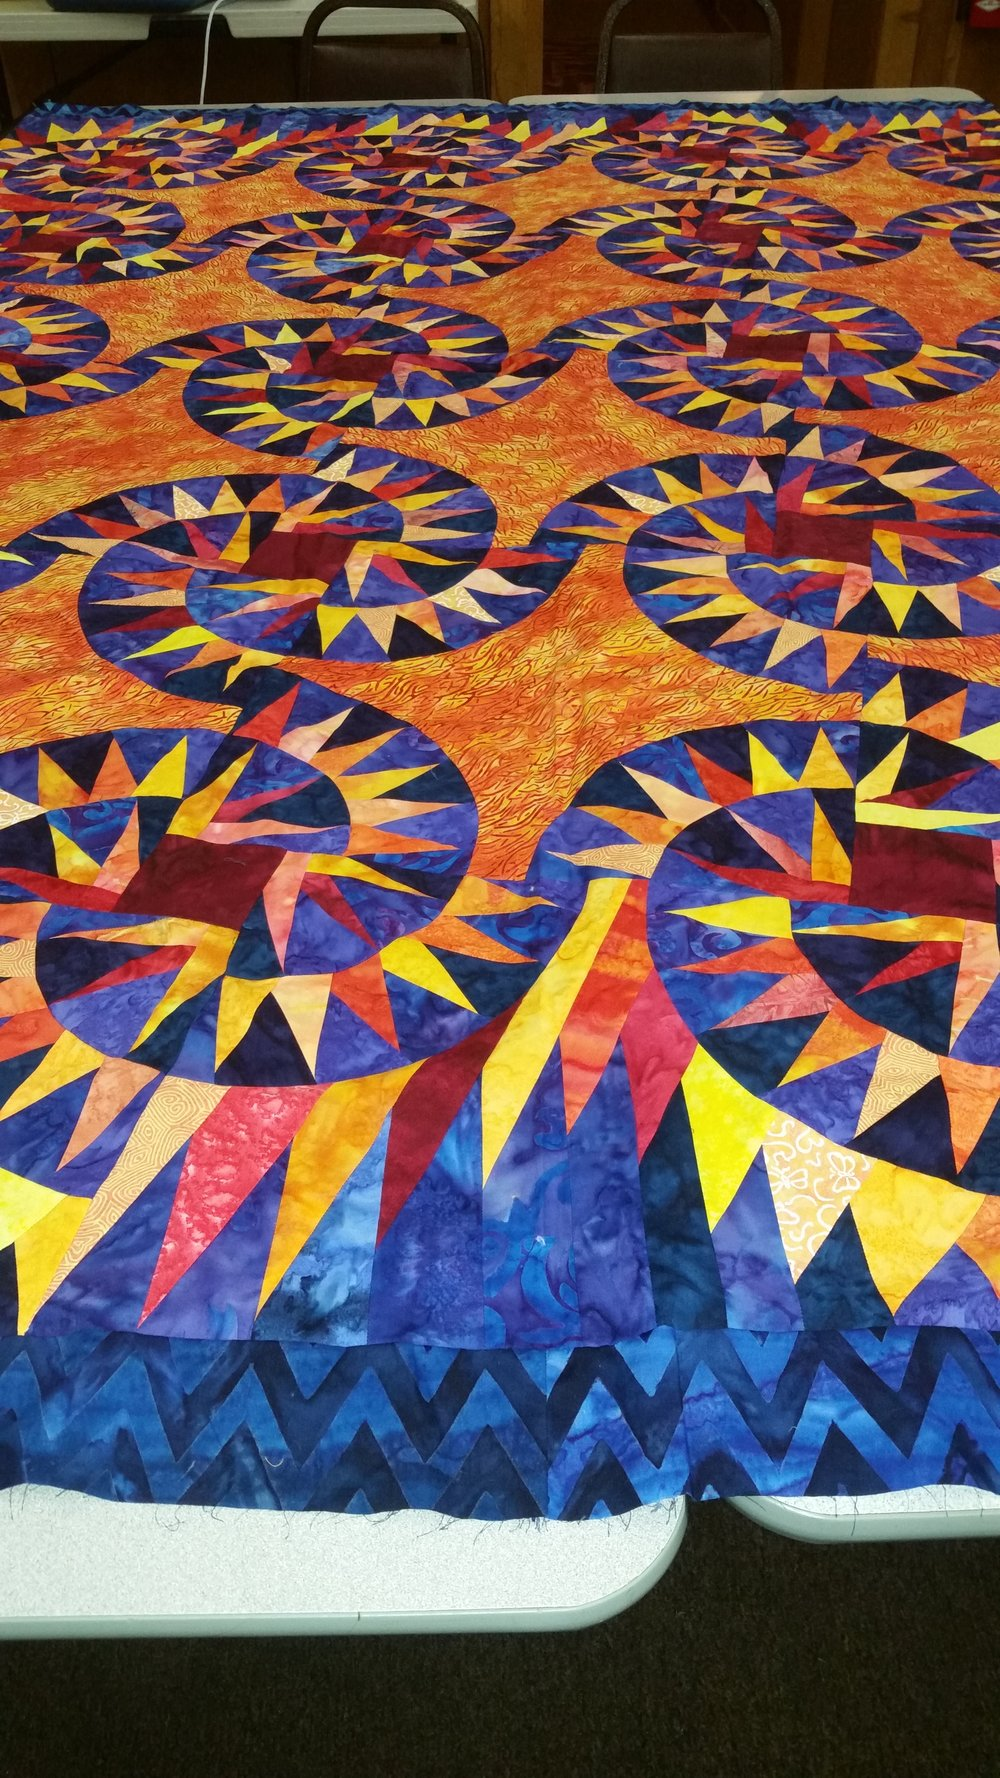 Quilt by Kathy Peacock